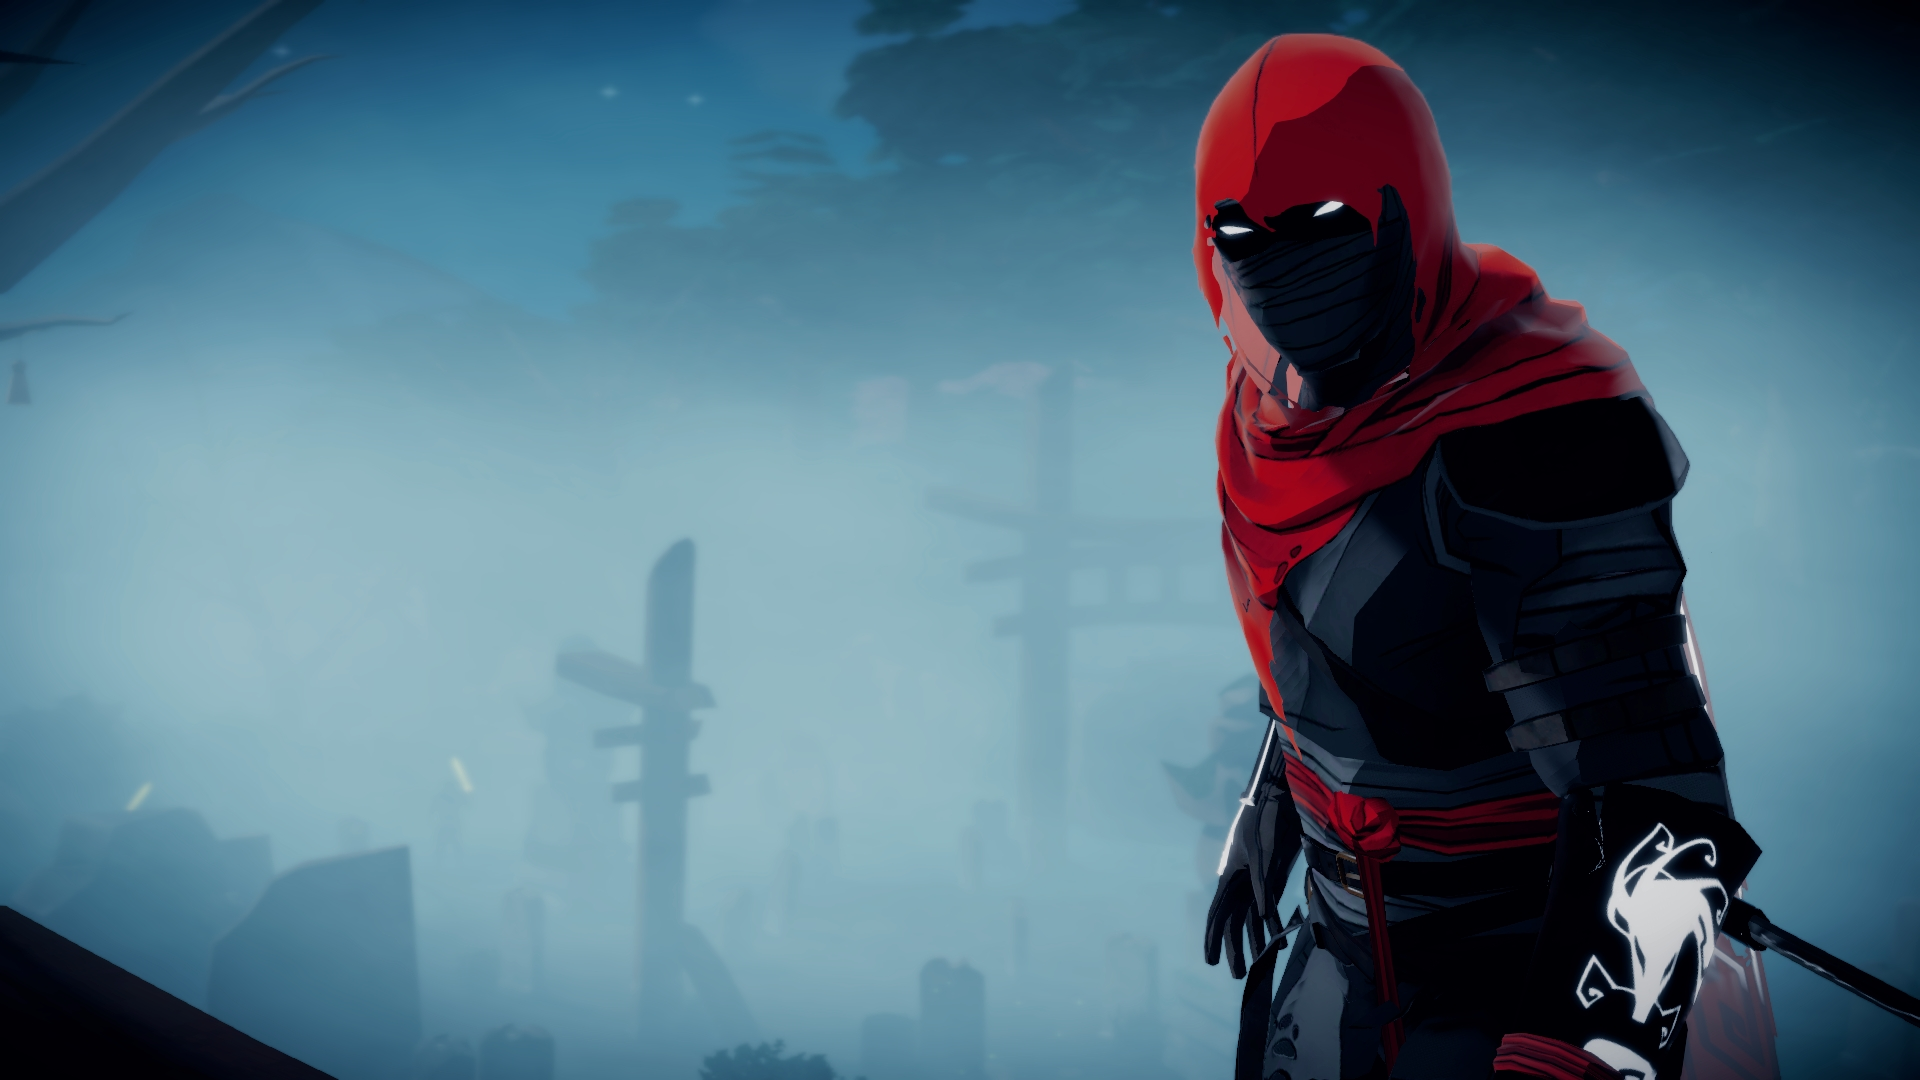 Nintnedo Fall Wallpapers Stealth Game Twin Souls Is Now Named Aragami Will Launch